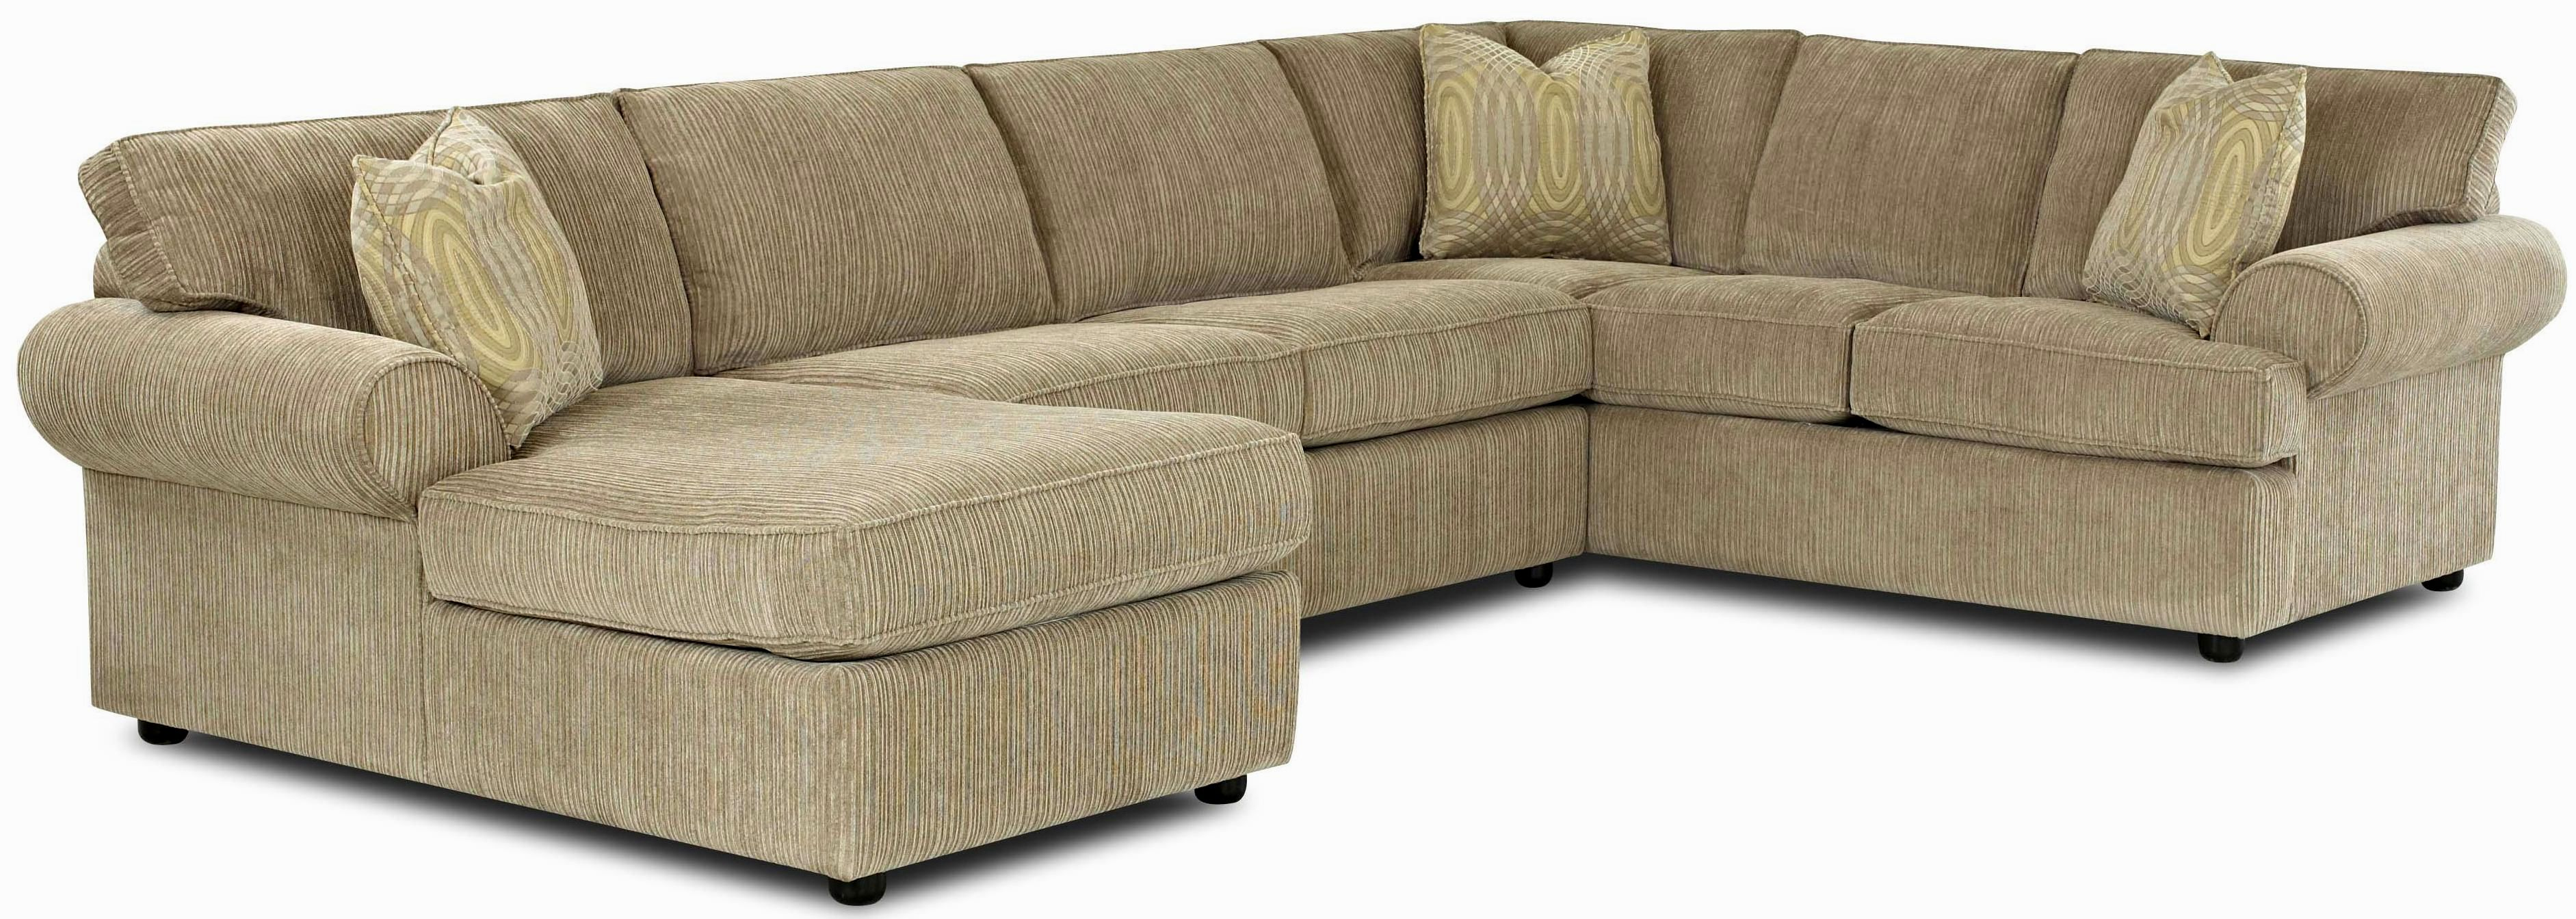 stunning reversible chaise sofa collection-Best Reversible Chaise sofa Collection